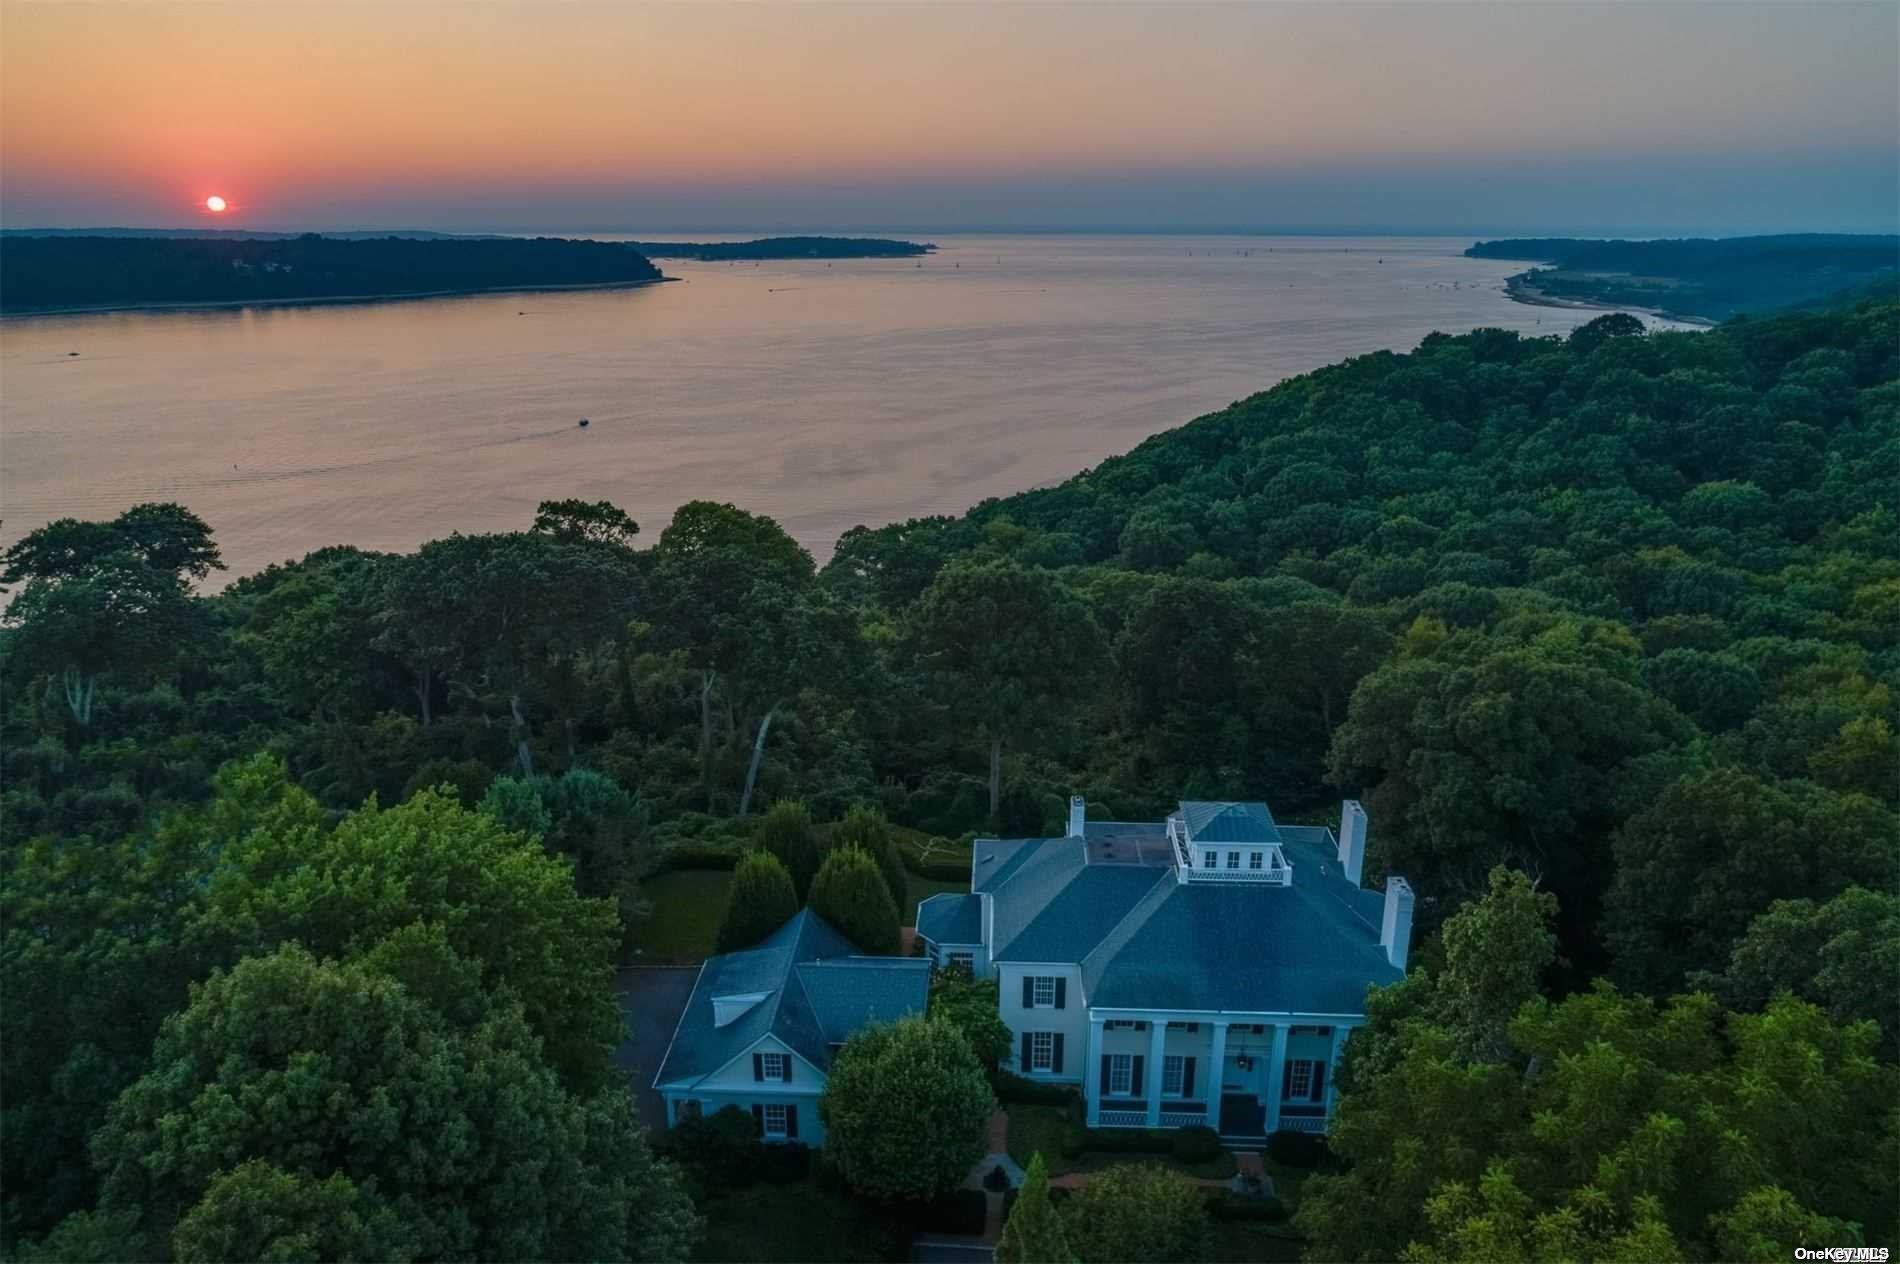 Waterfront architectural masterpiece overlooking Cold Spring Harbor to Centre Island and beyond with breathtaking panoramic sunset views from most every room. Custom built in 1996, by Kean Development and Andrew Giambertone Architects, with striking details including dramatic 3 story foyer and sweeping staircase, intricate millwork, 13ft ceilings, authentic gas lanterns and multiple expansive covered porches. Encompassing 3.2 acres at end of cul-de-sac in sought after Burrwood Estates, this impressive property includes separate guest quarters above 3 car garage, newly updated gunite salt water heated pool with hot tub, and Summer cabana. Nearby Jennings Beach Association and Lloyd Harbor Village Beach with mooring rights (fee).